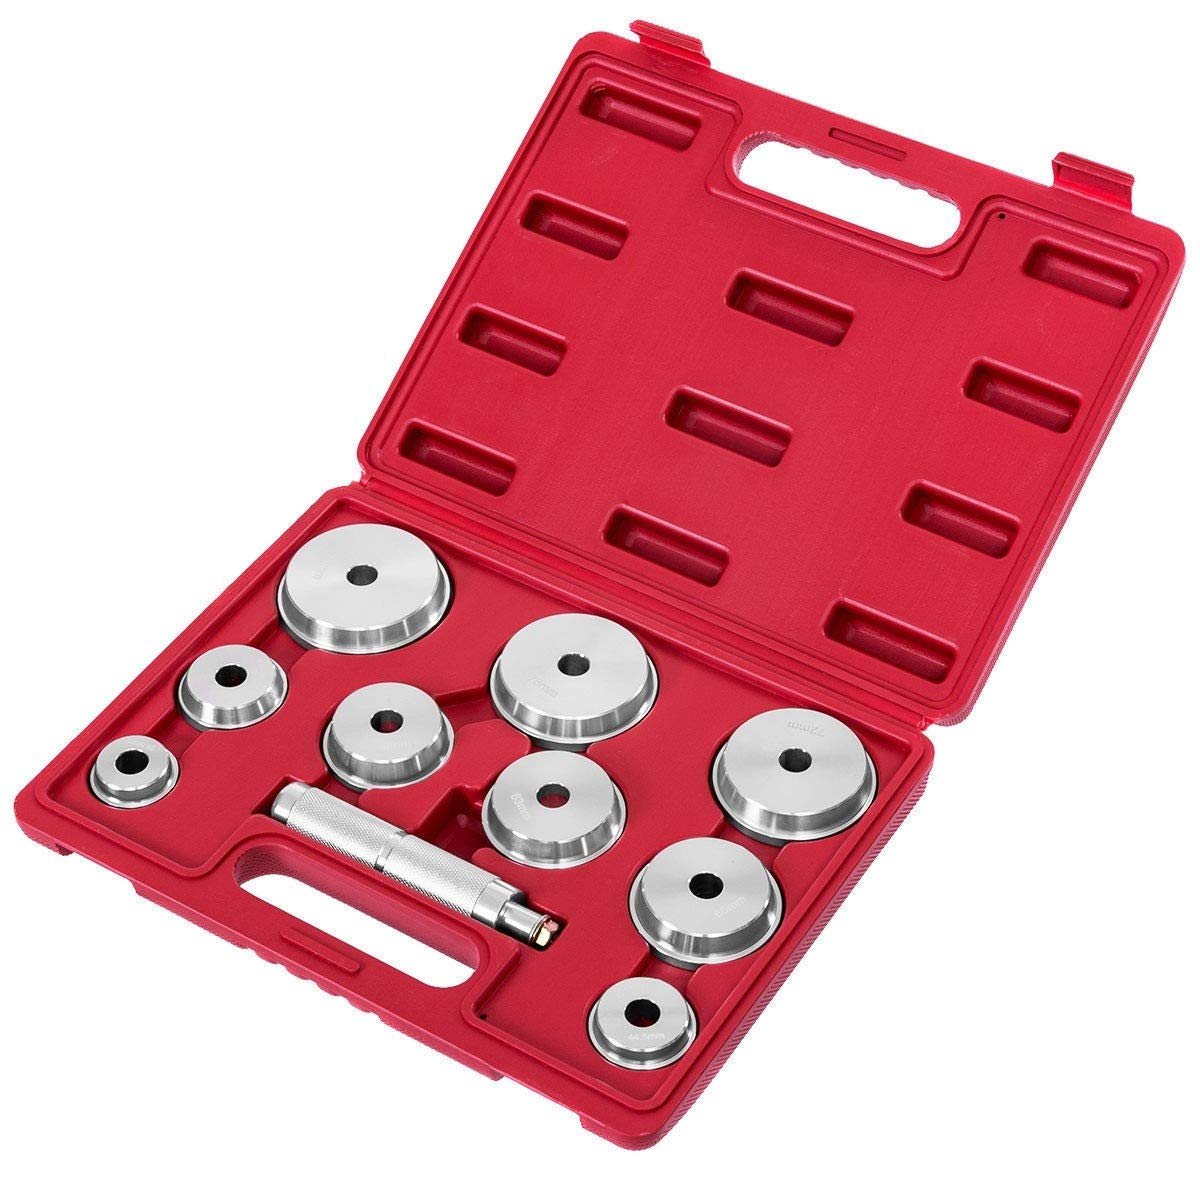 King77777 10 pcs Wheel Bearing Race and Seal Driver Set Machined Aluminum Construction, New, by King77777